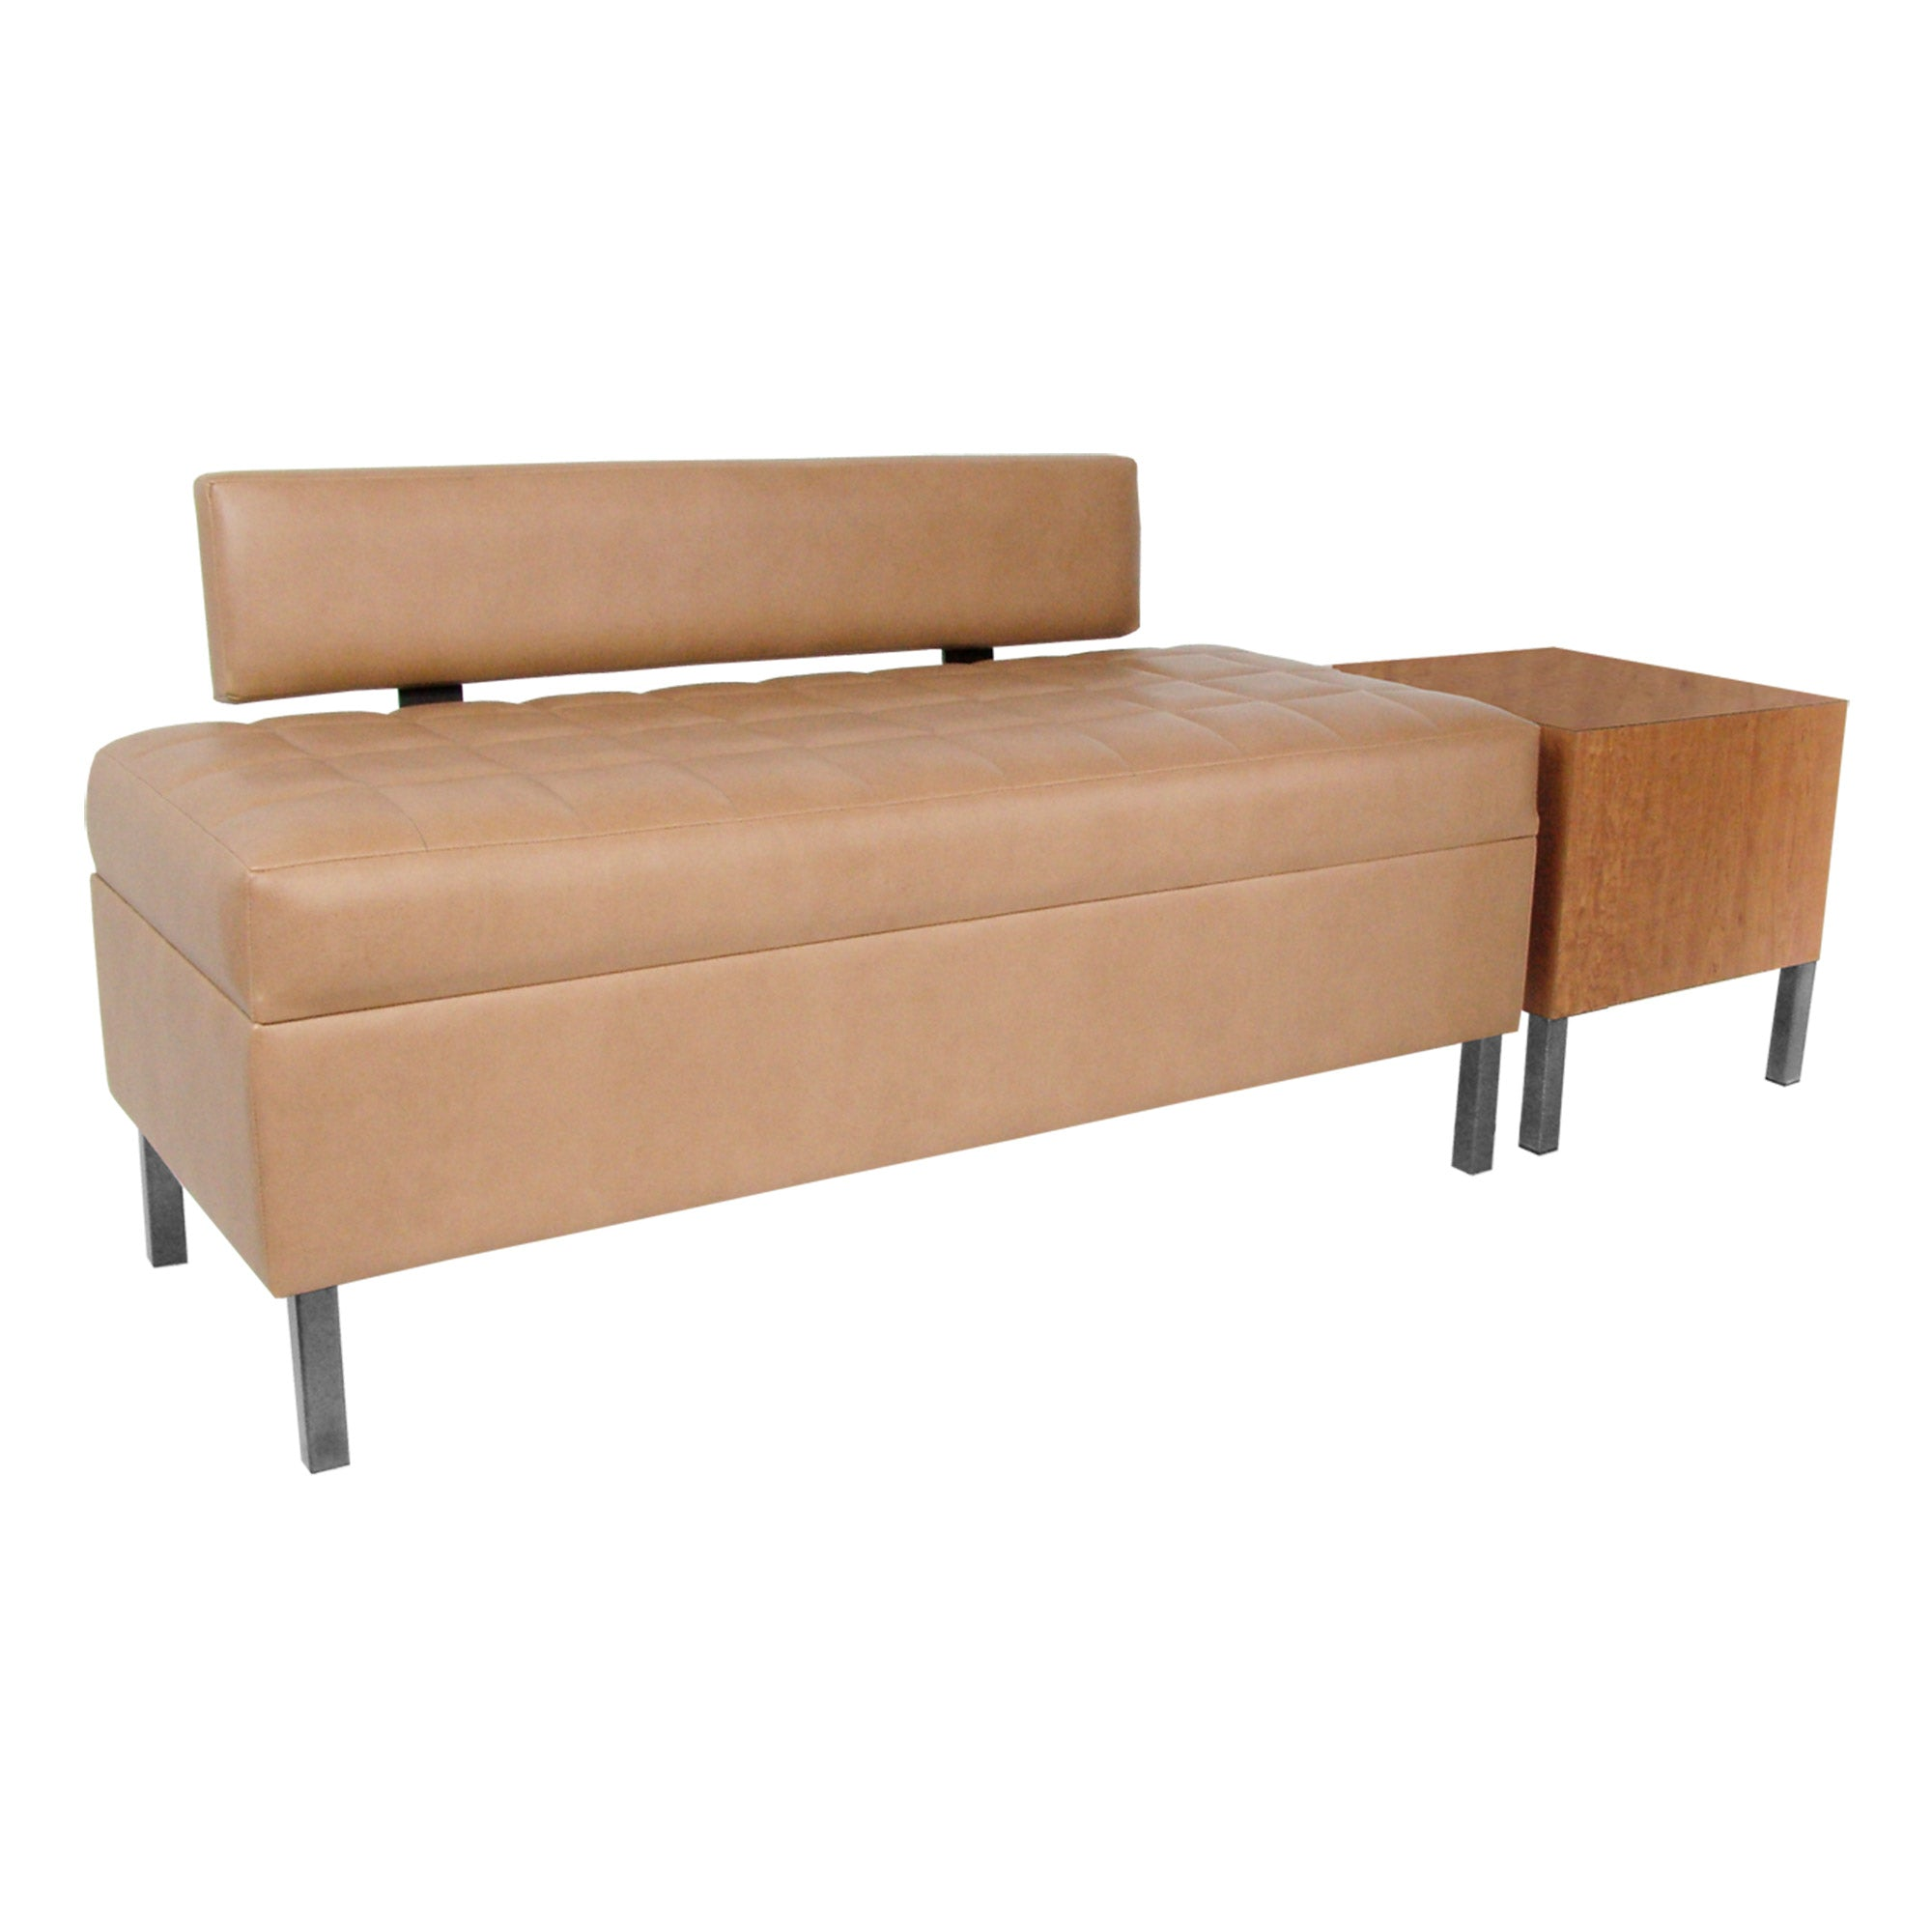 Enova Bench with Lumbar Support - Collins